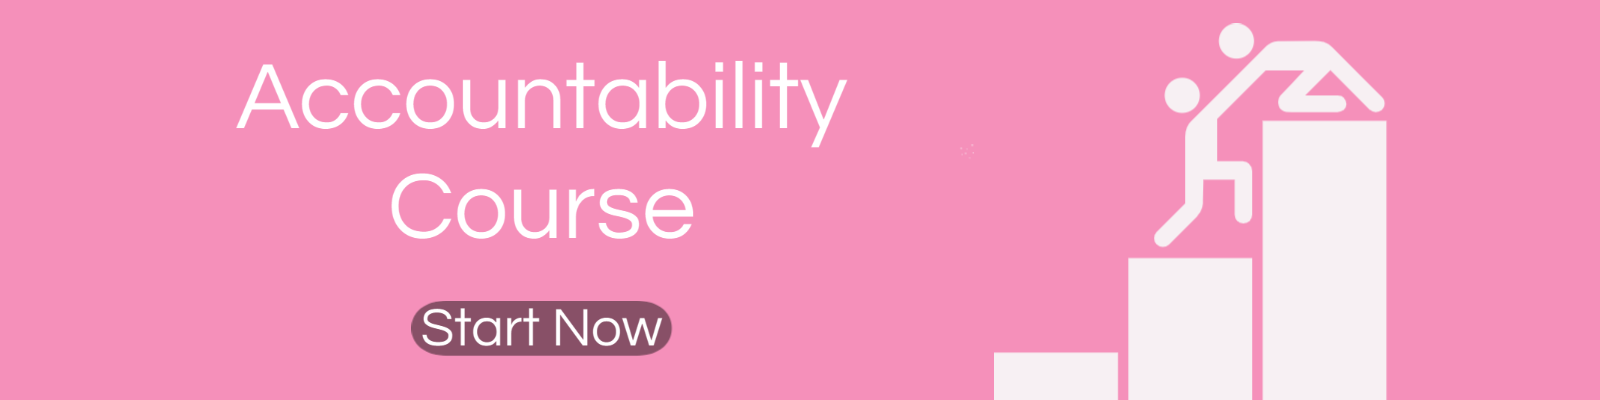 Accountability Course (Banner)